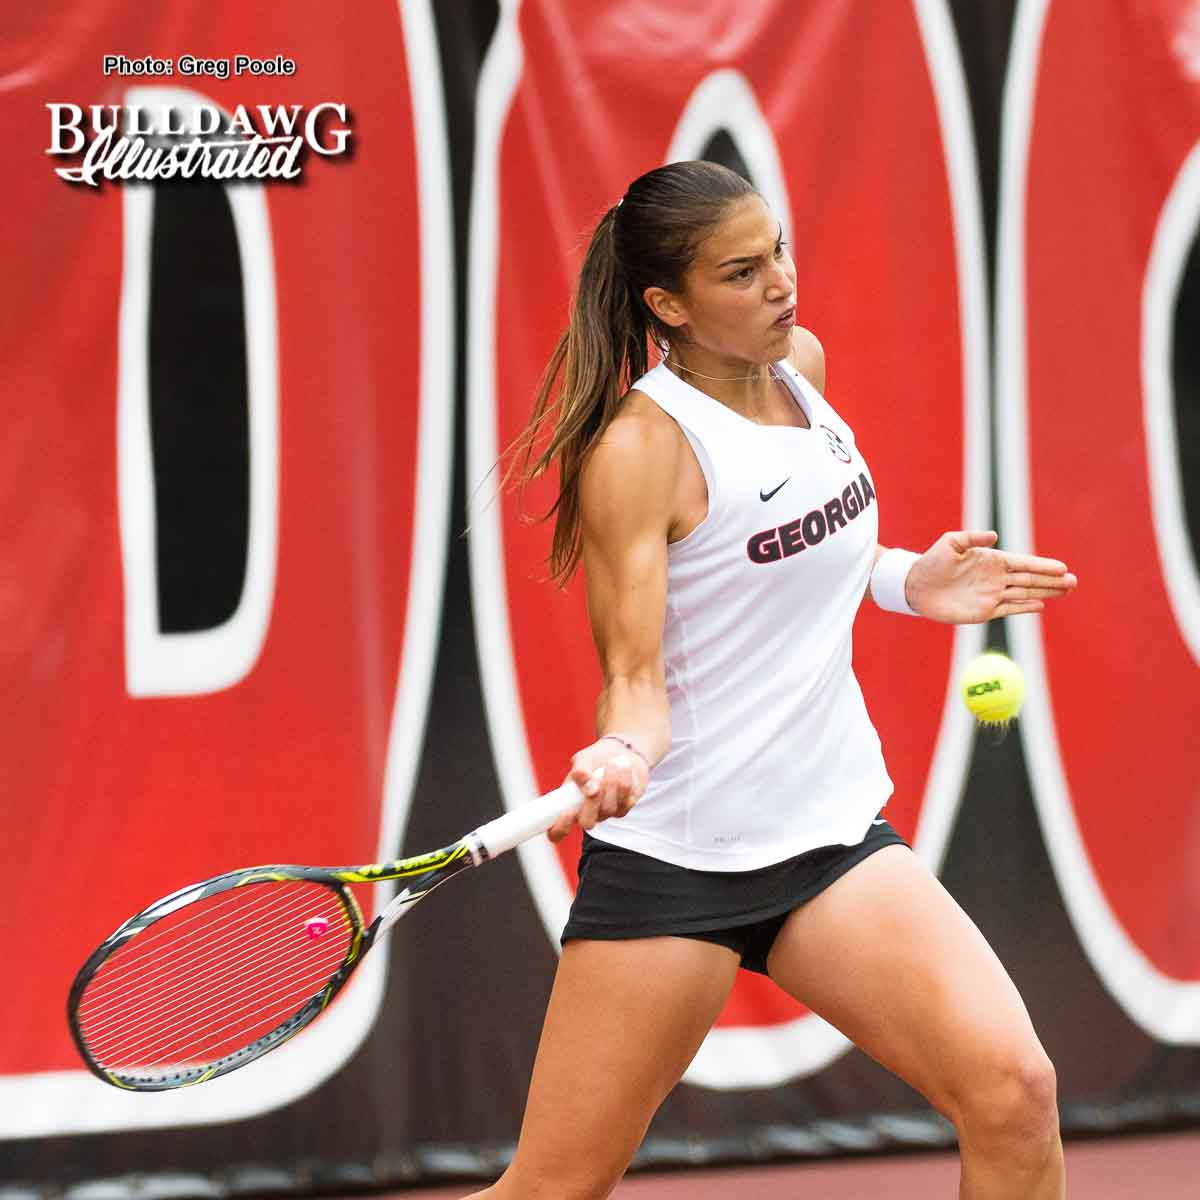 Elena Christofi  - UGA Women's Tennis Team -